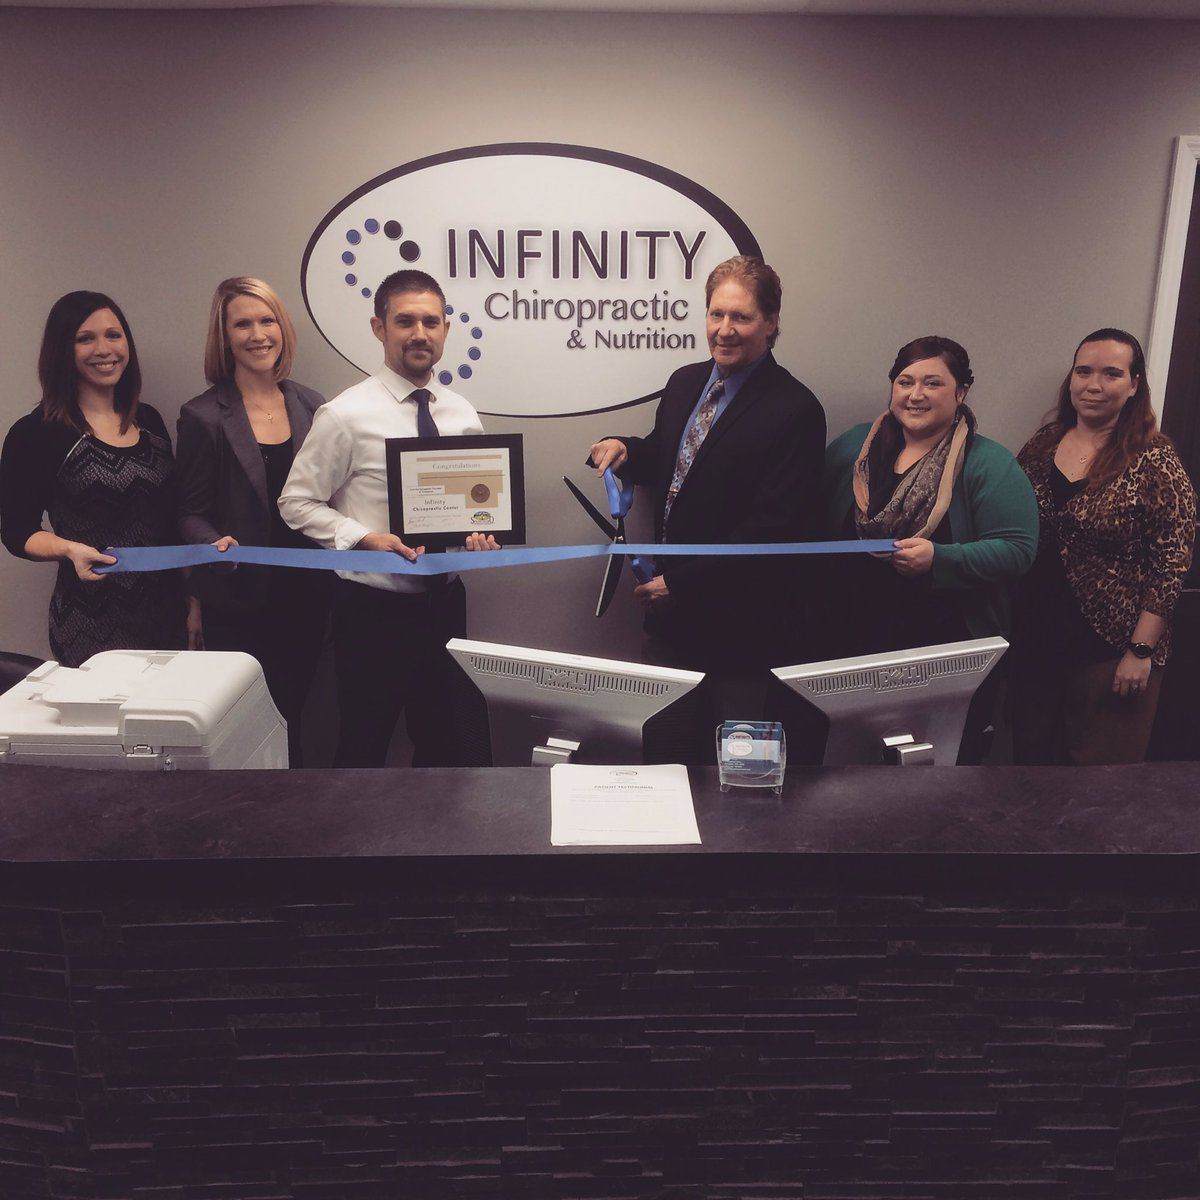 Springboro Chamber On Twitter Congratulations To Dr Brent - Infinity chiropractic